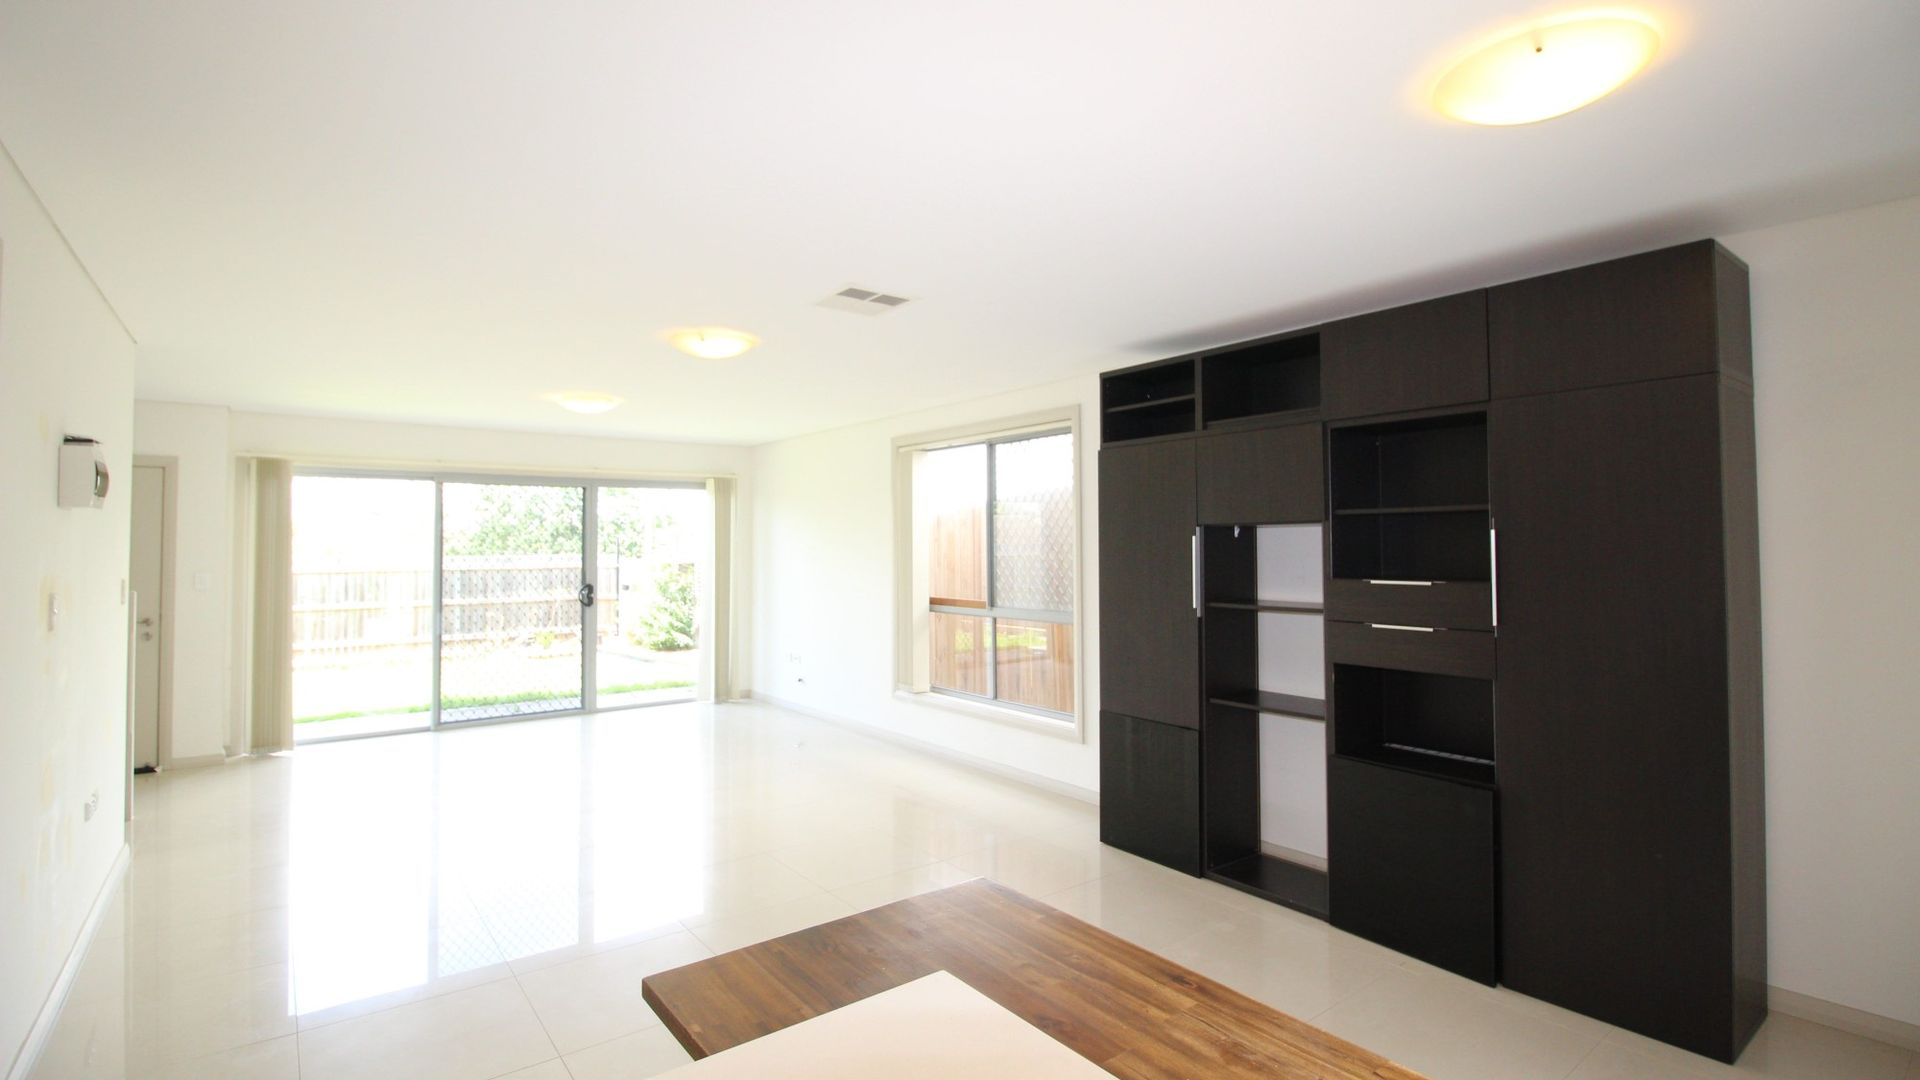 2BED/11 Pearce St, Ermington NSW 2115, Image 2